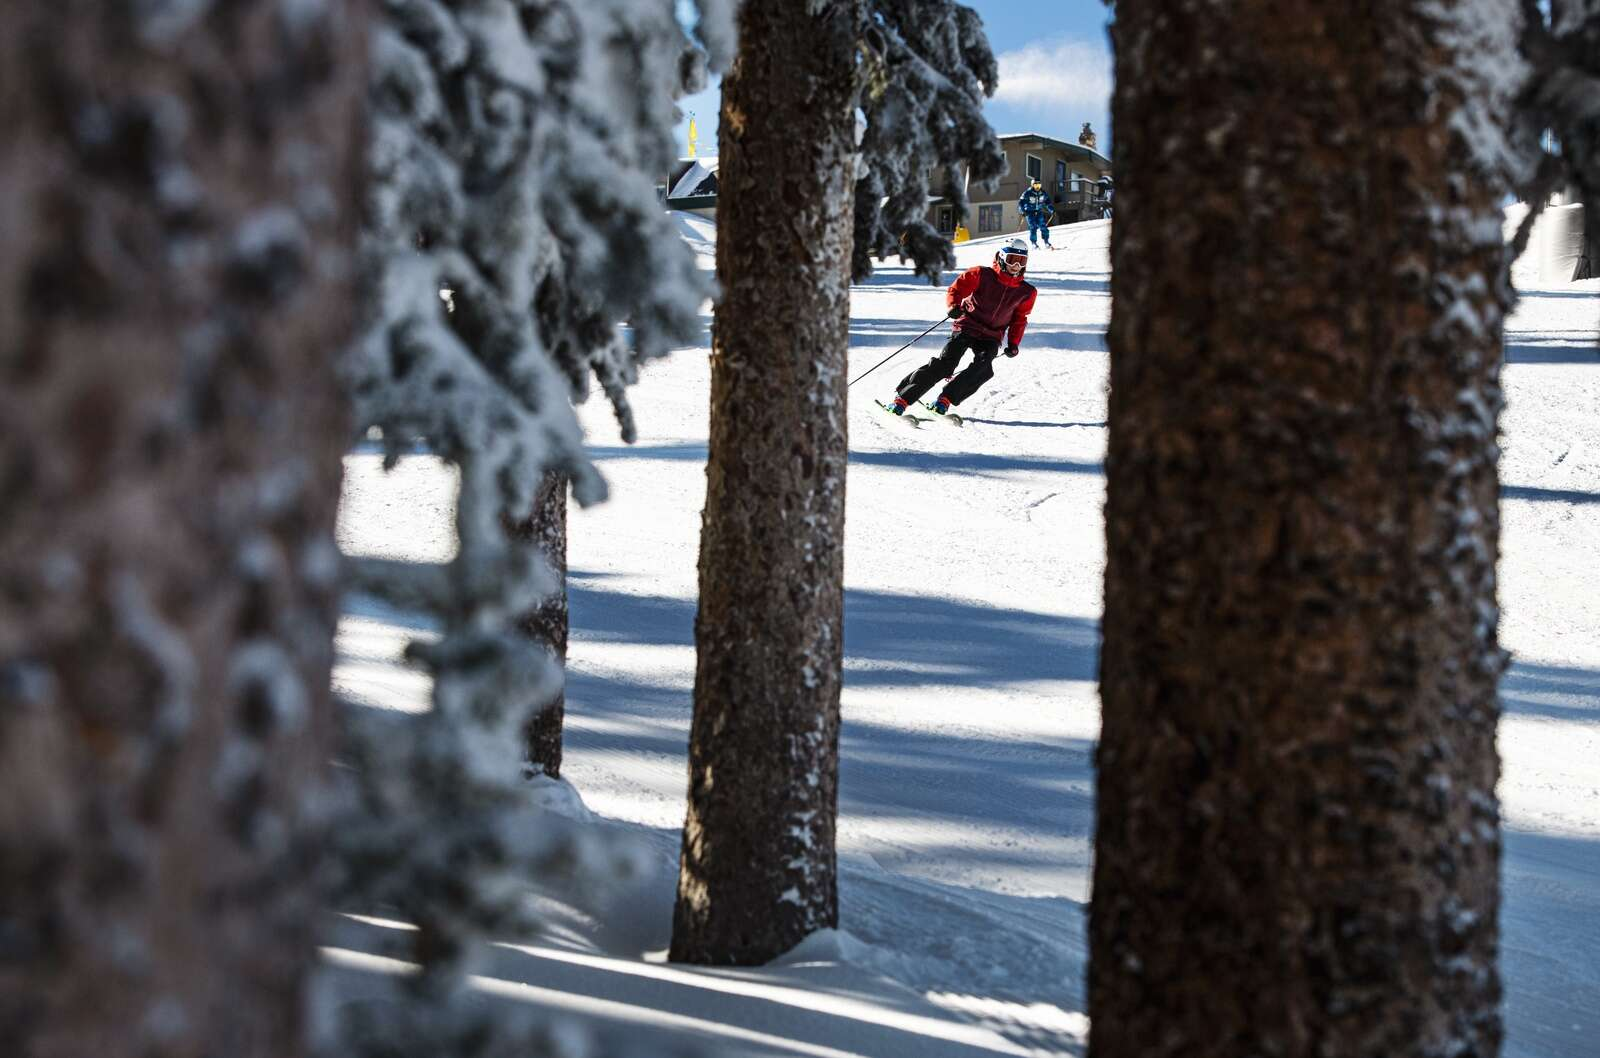 A skier drops in from the Ajax Express Lift on opening day at Aspen Mountain on Wednesday, Nov. 25, 2020. (Kelsey Brunner/The Aspen Times)